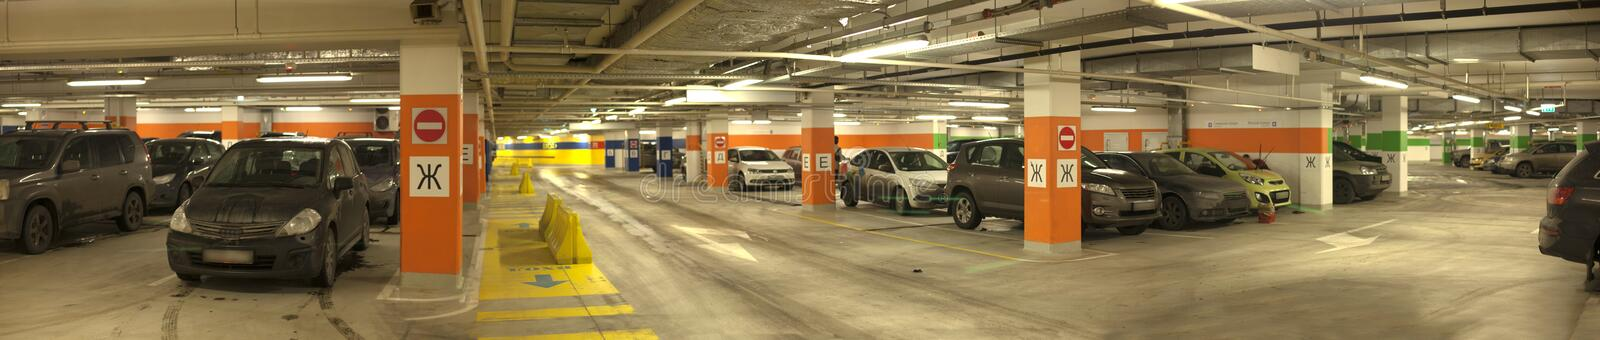 Download Underground Parking With Cars. Stock Photo - Image: 37464062